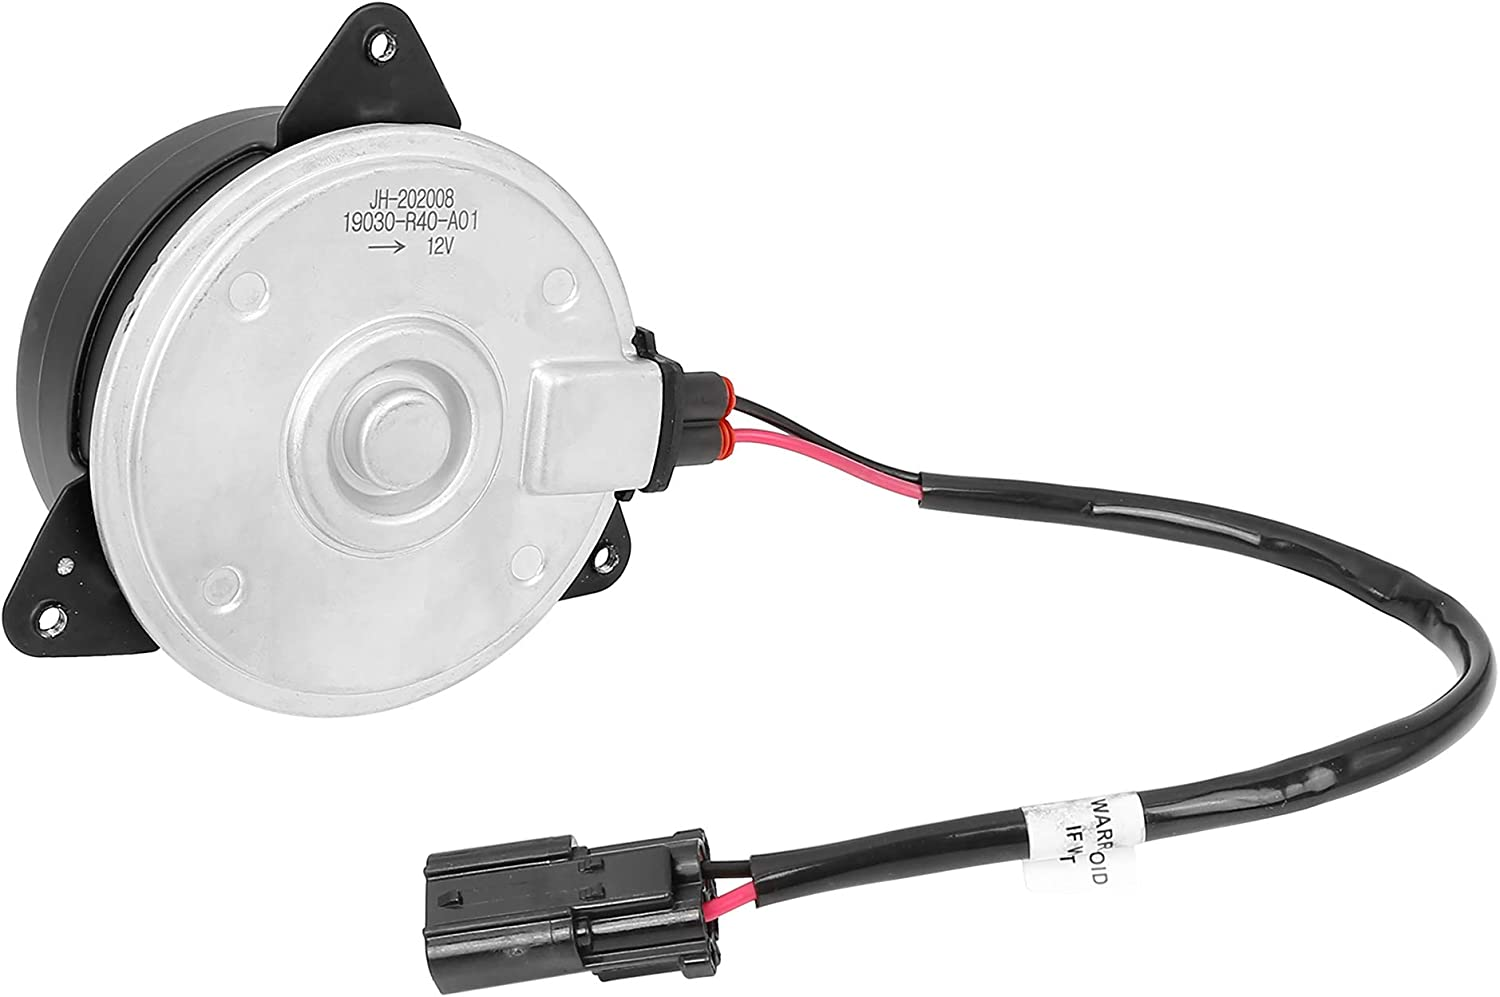 X AUTOHAUX 19030-R40-A01 Replacement Radiator Cooling Fan Motor for Honda Pilot 2009-2015